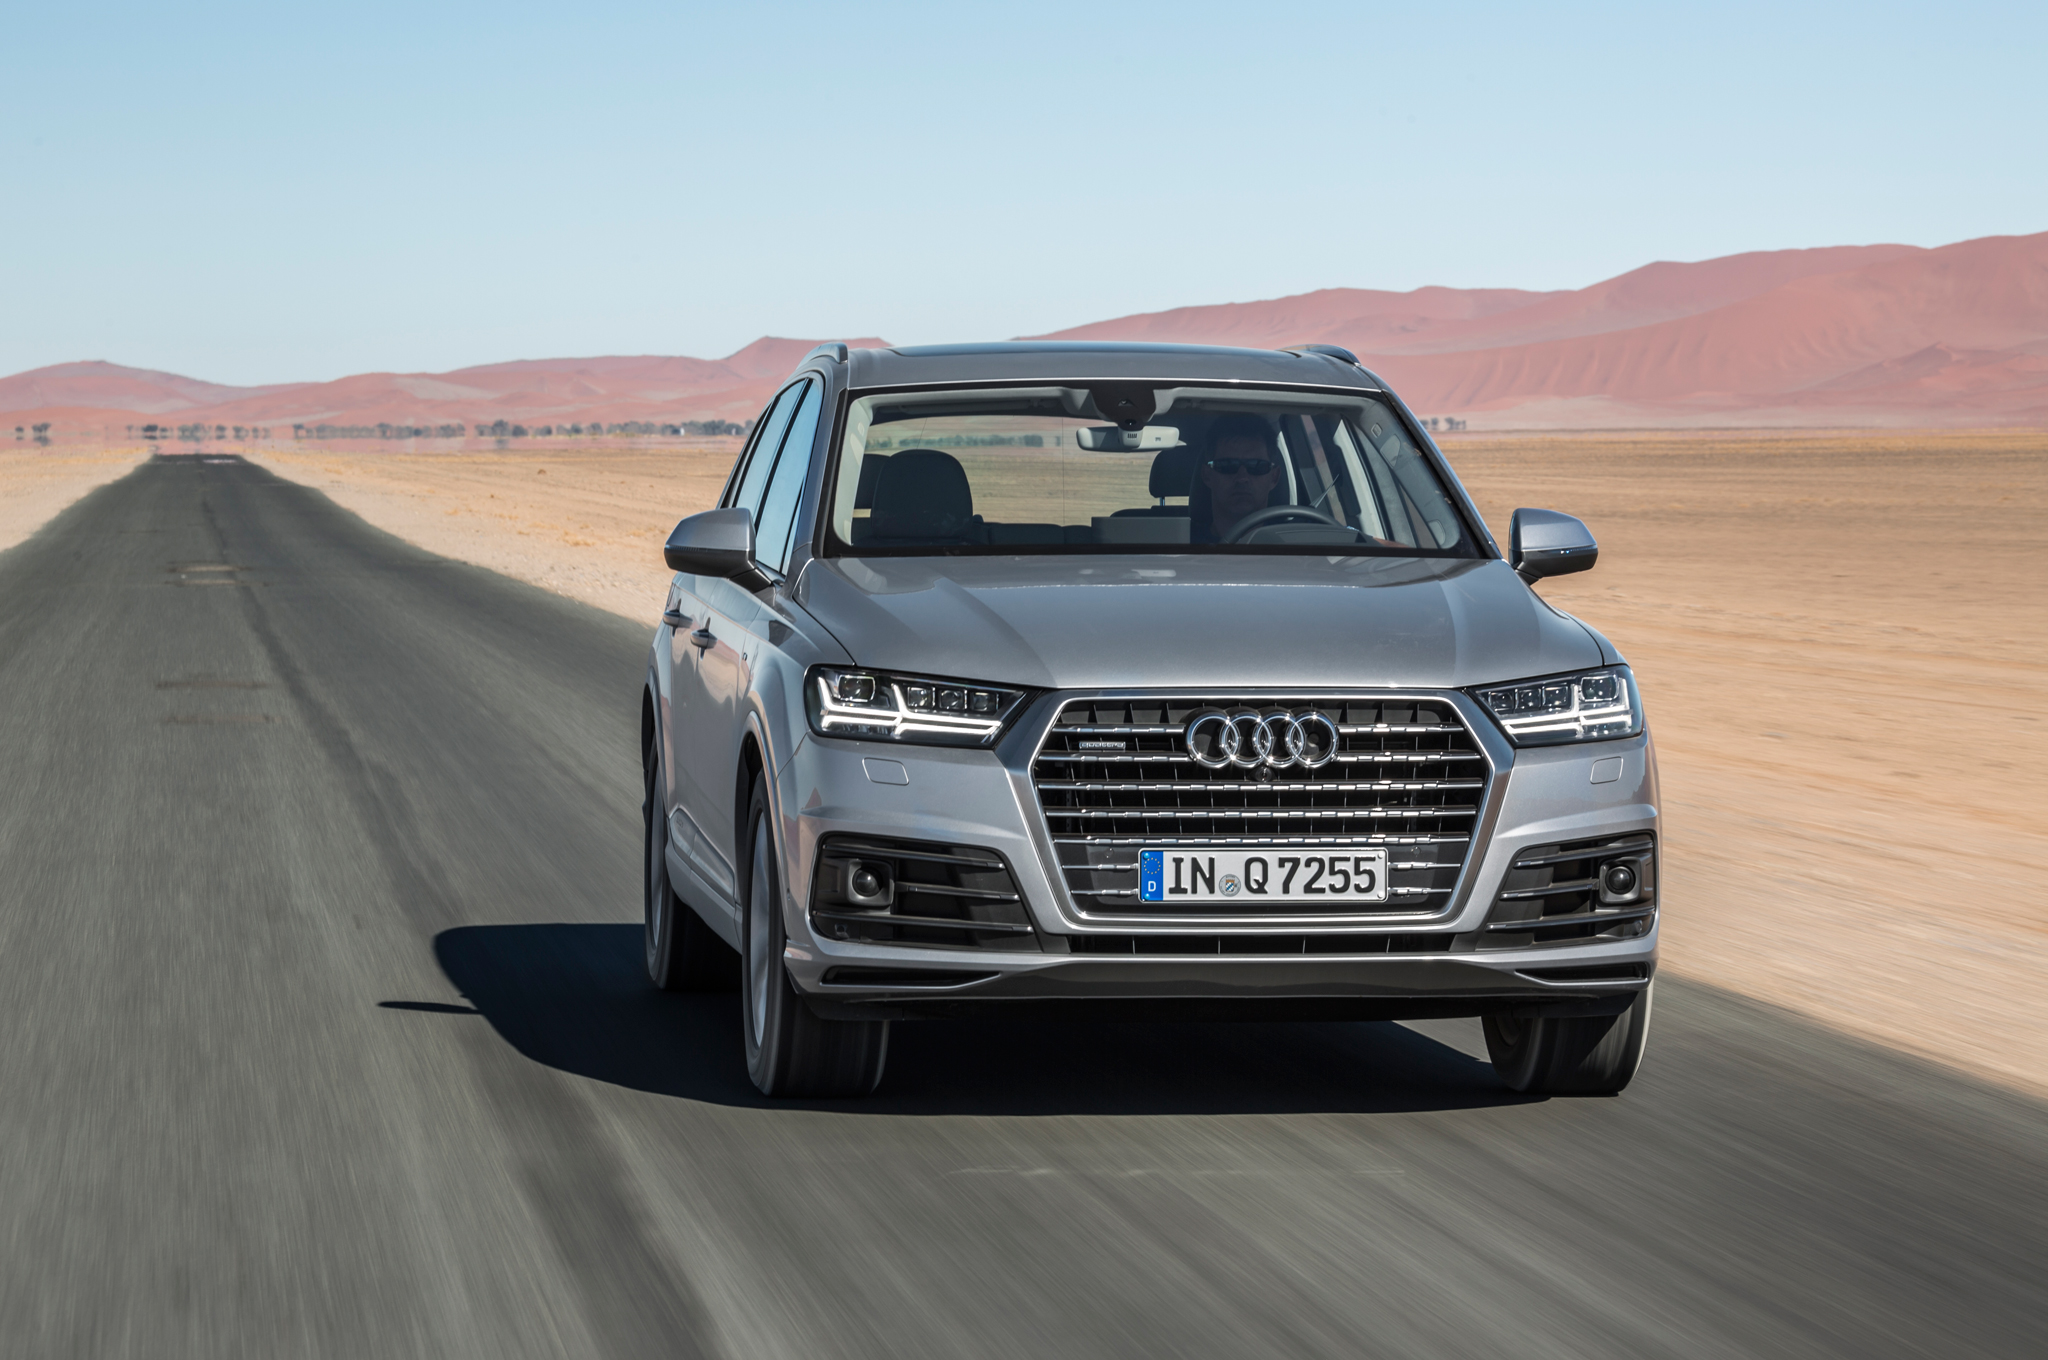 medium resolution of report electric audi q6 arriving by 2018 with 310 miles of range